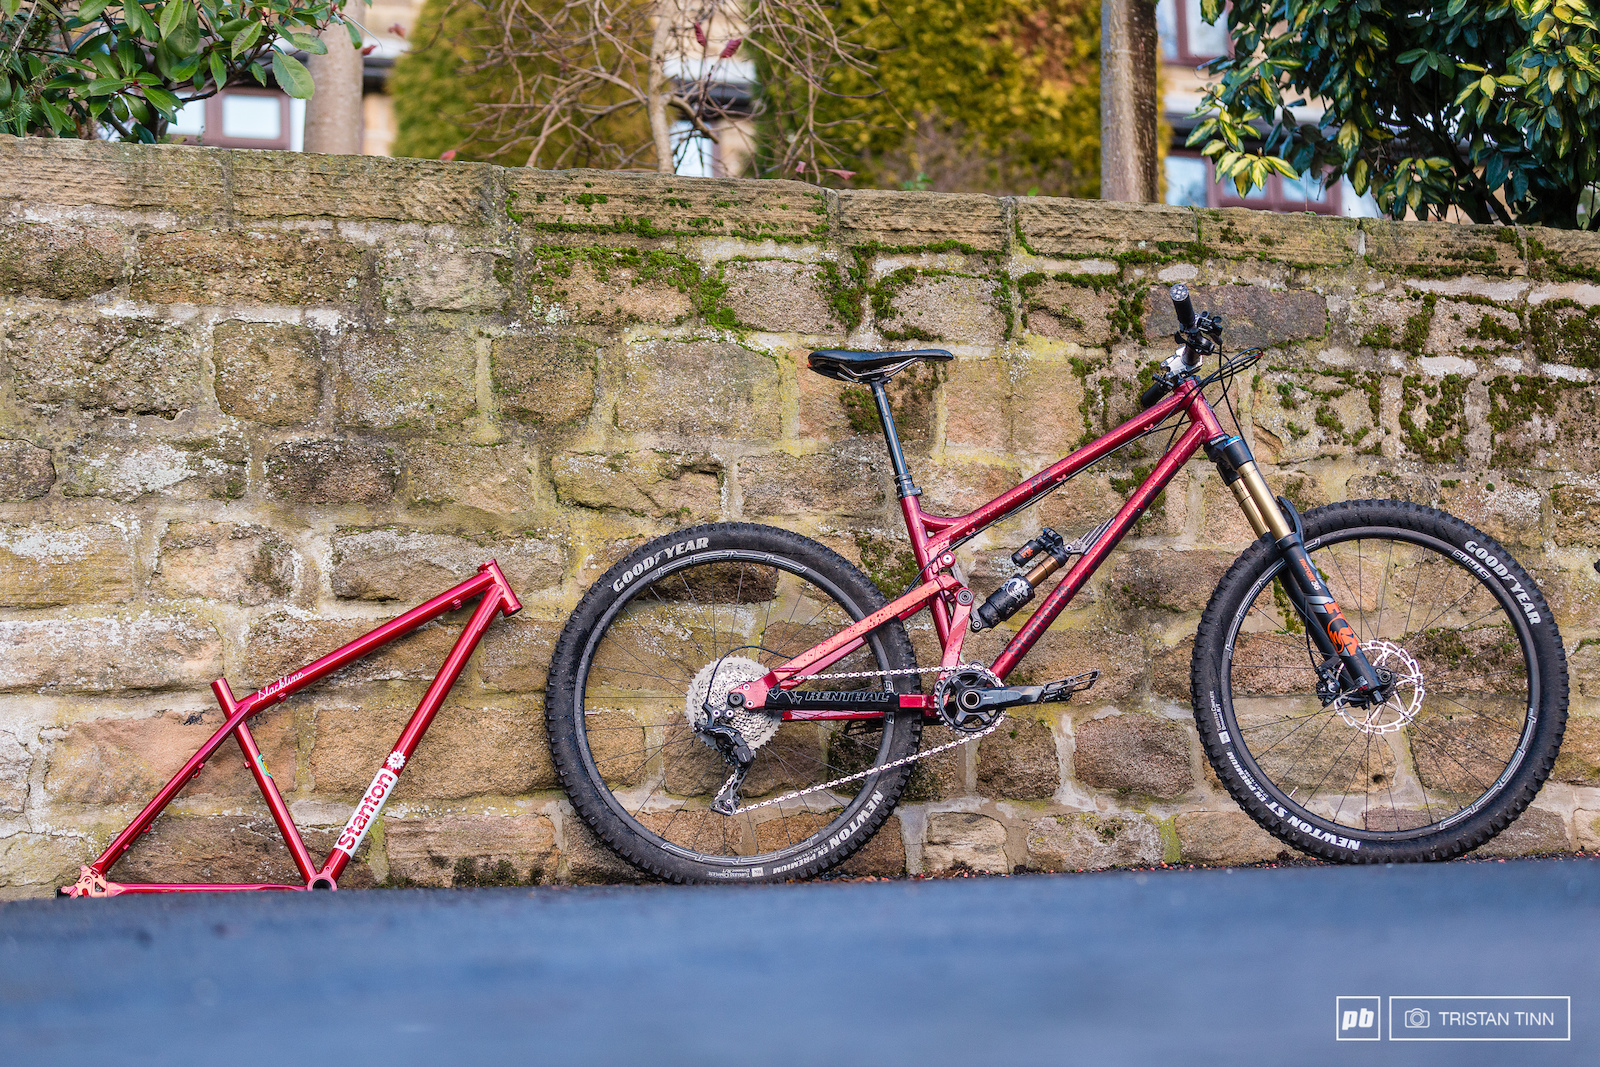 The original Switchback frame which helped bring the brand to the public eye in the Dirt 100 and the newly produced Switchback FS a 650b version of the Switch9er FS available with 140mm or 160mm rear travel.